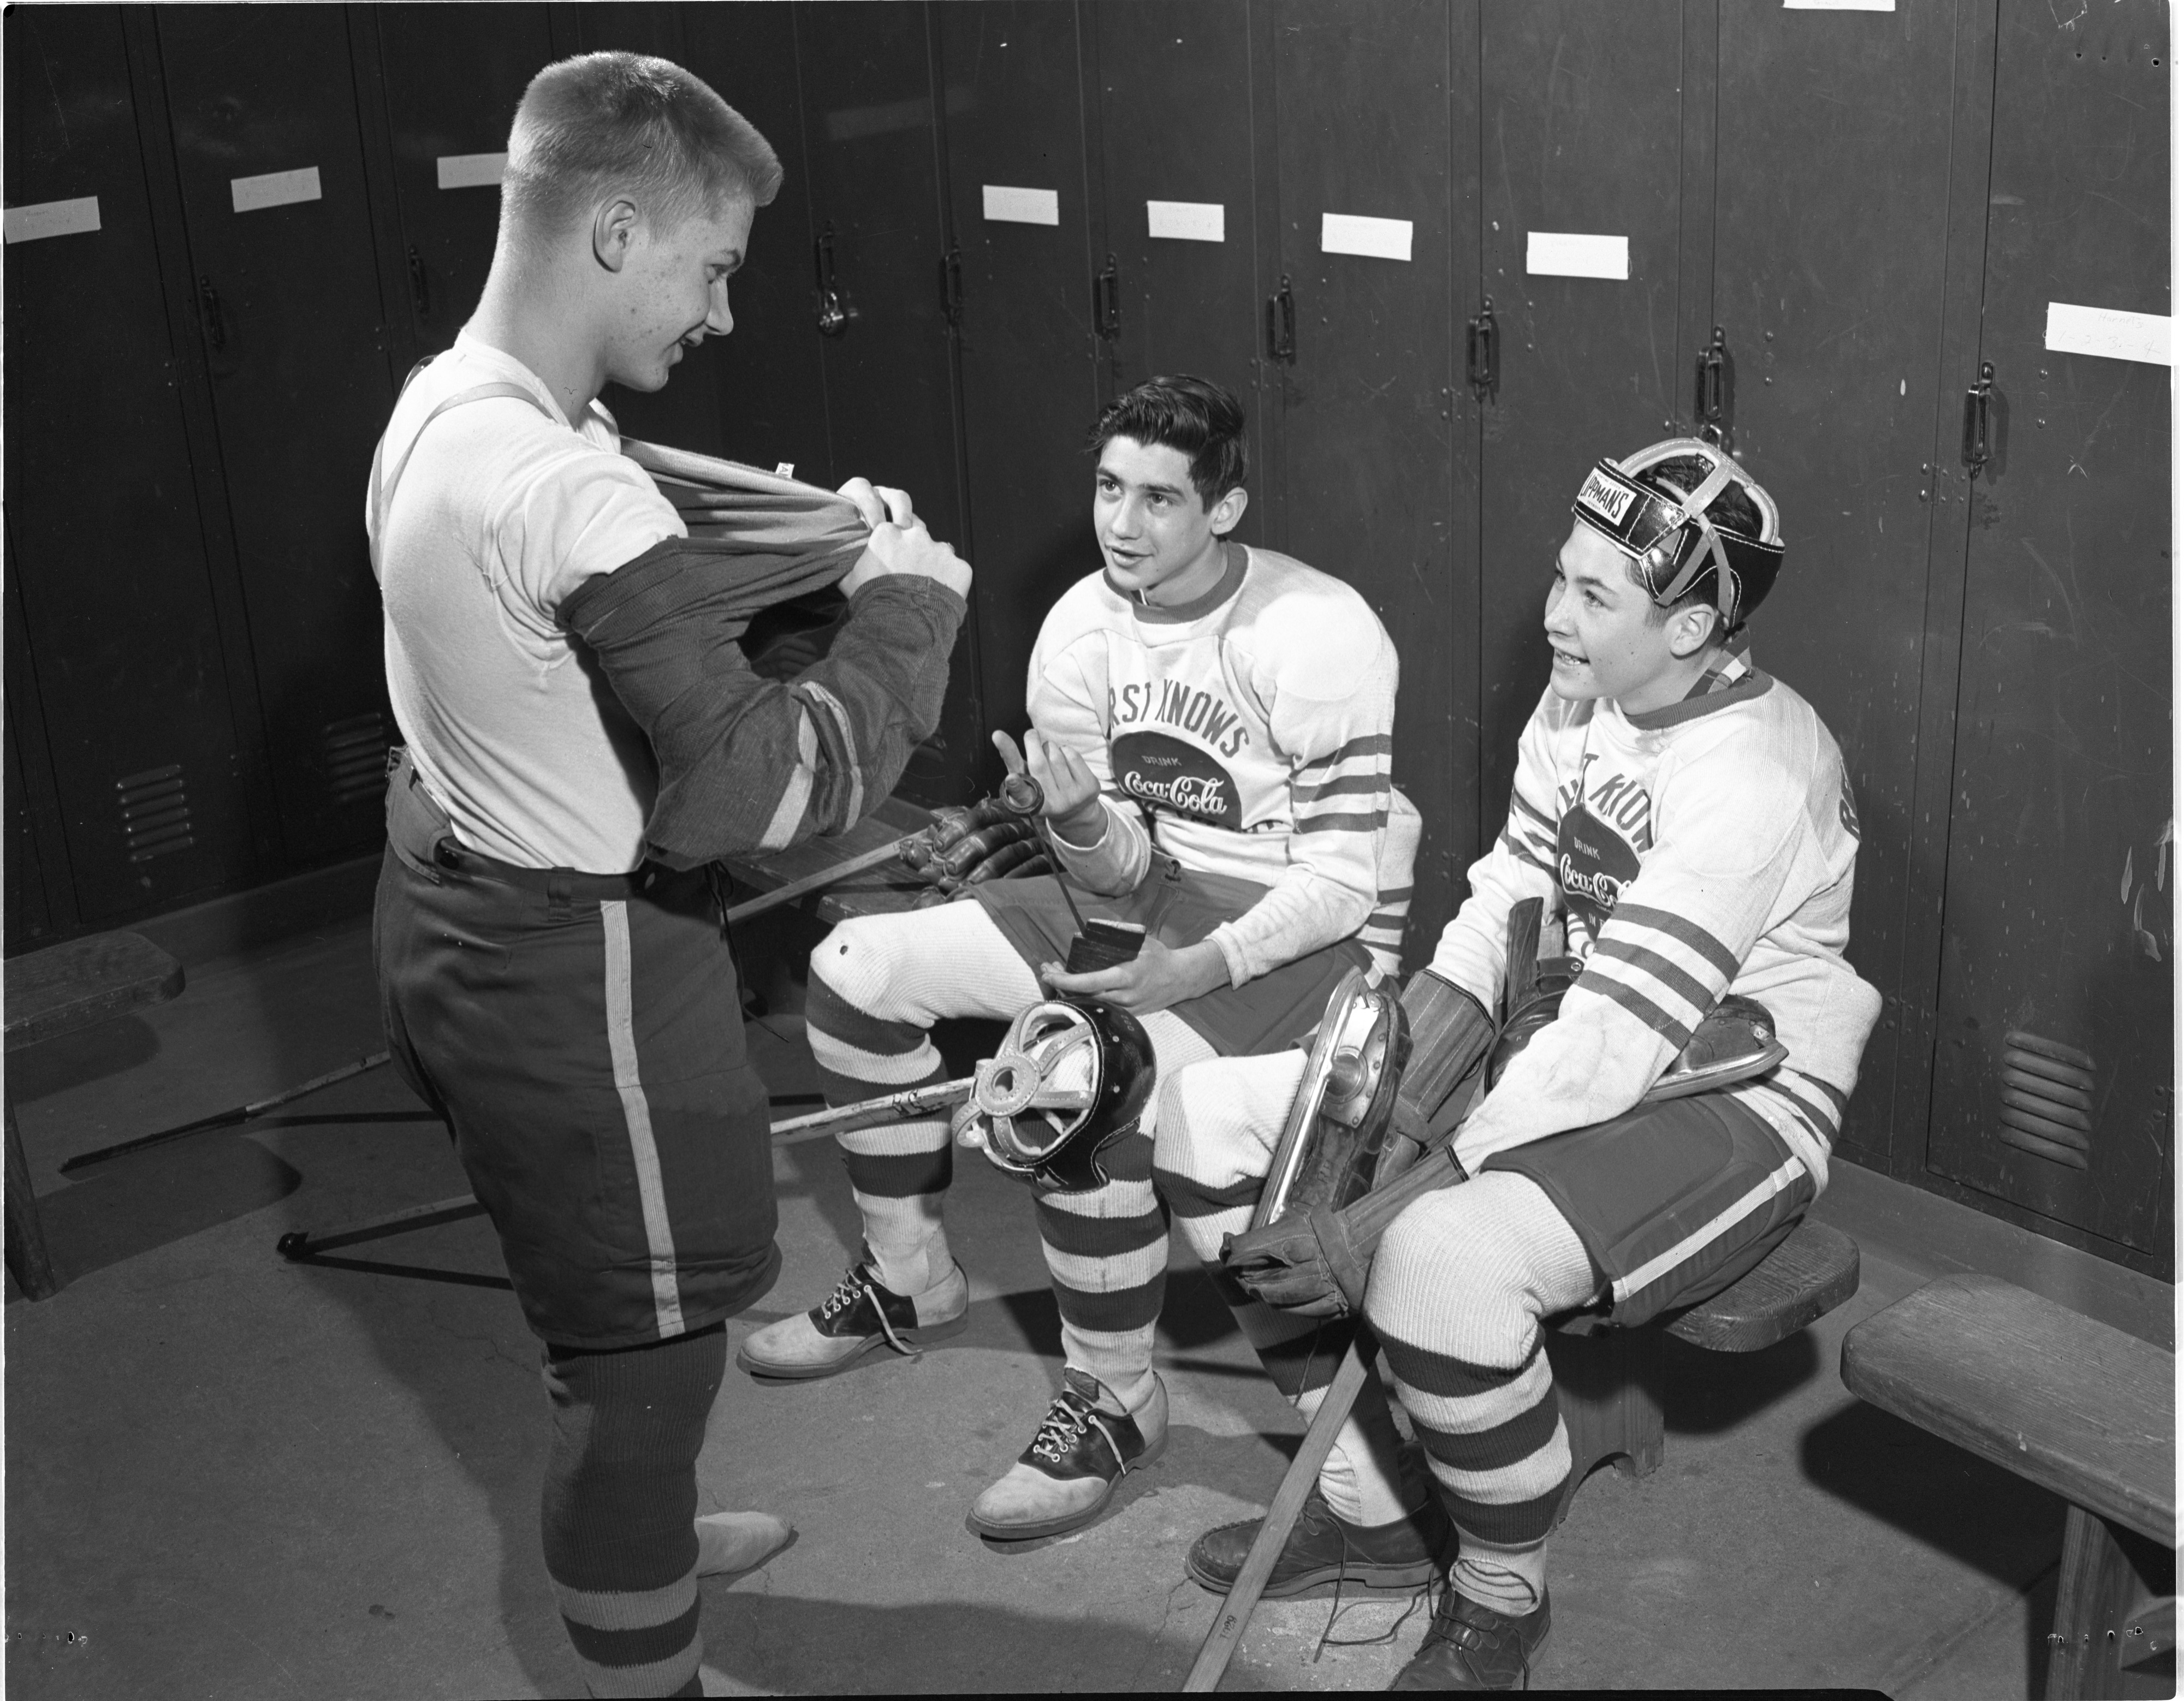 Teen Hockey Players Dress For Their Games In Wines Fieldhouse Locker Room, February 1953 image